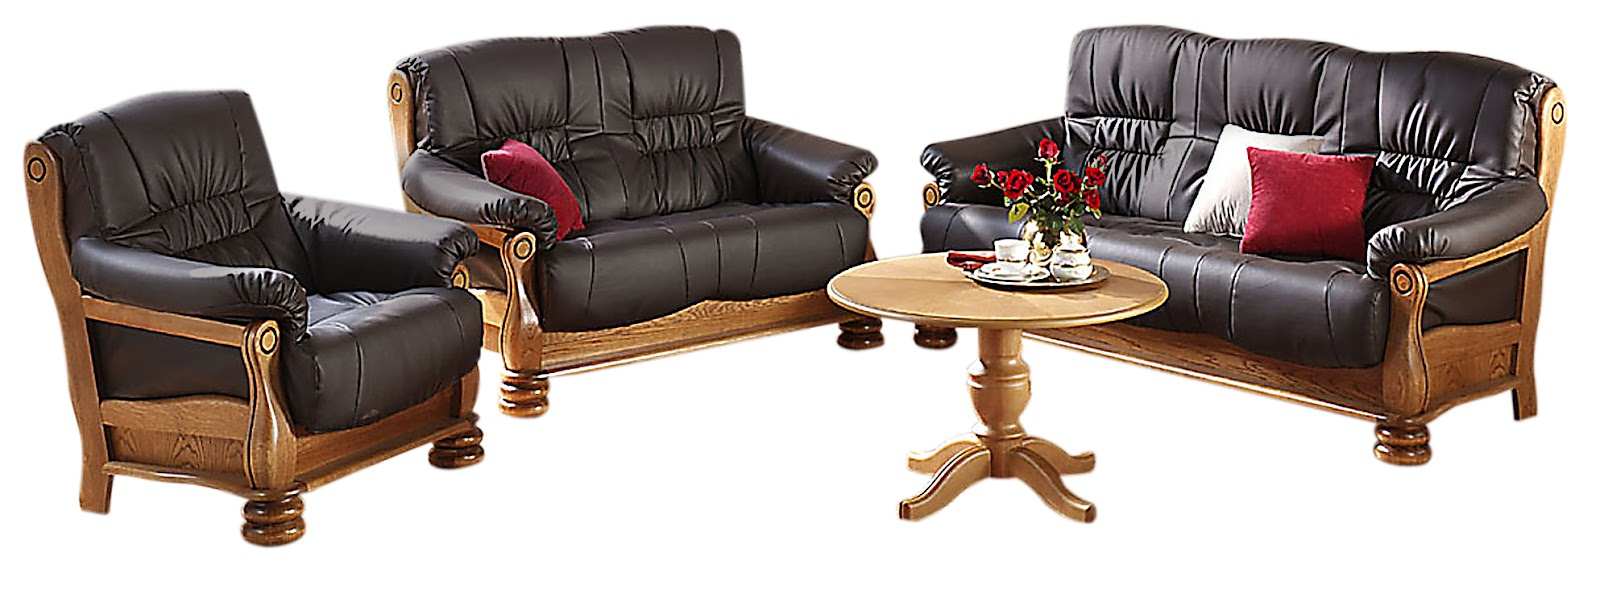 Sofa Olx Jodhpur Wooden Sofa Set Designs Photo Gallery Taraba Home Review